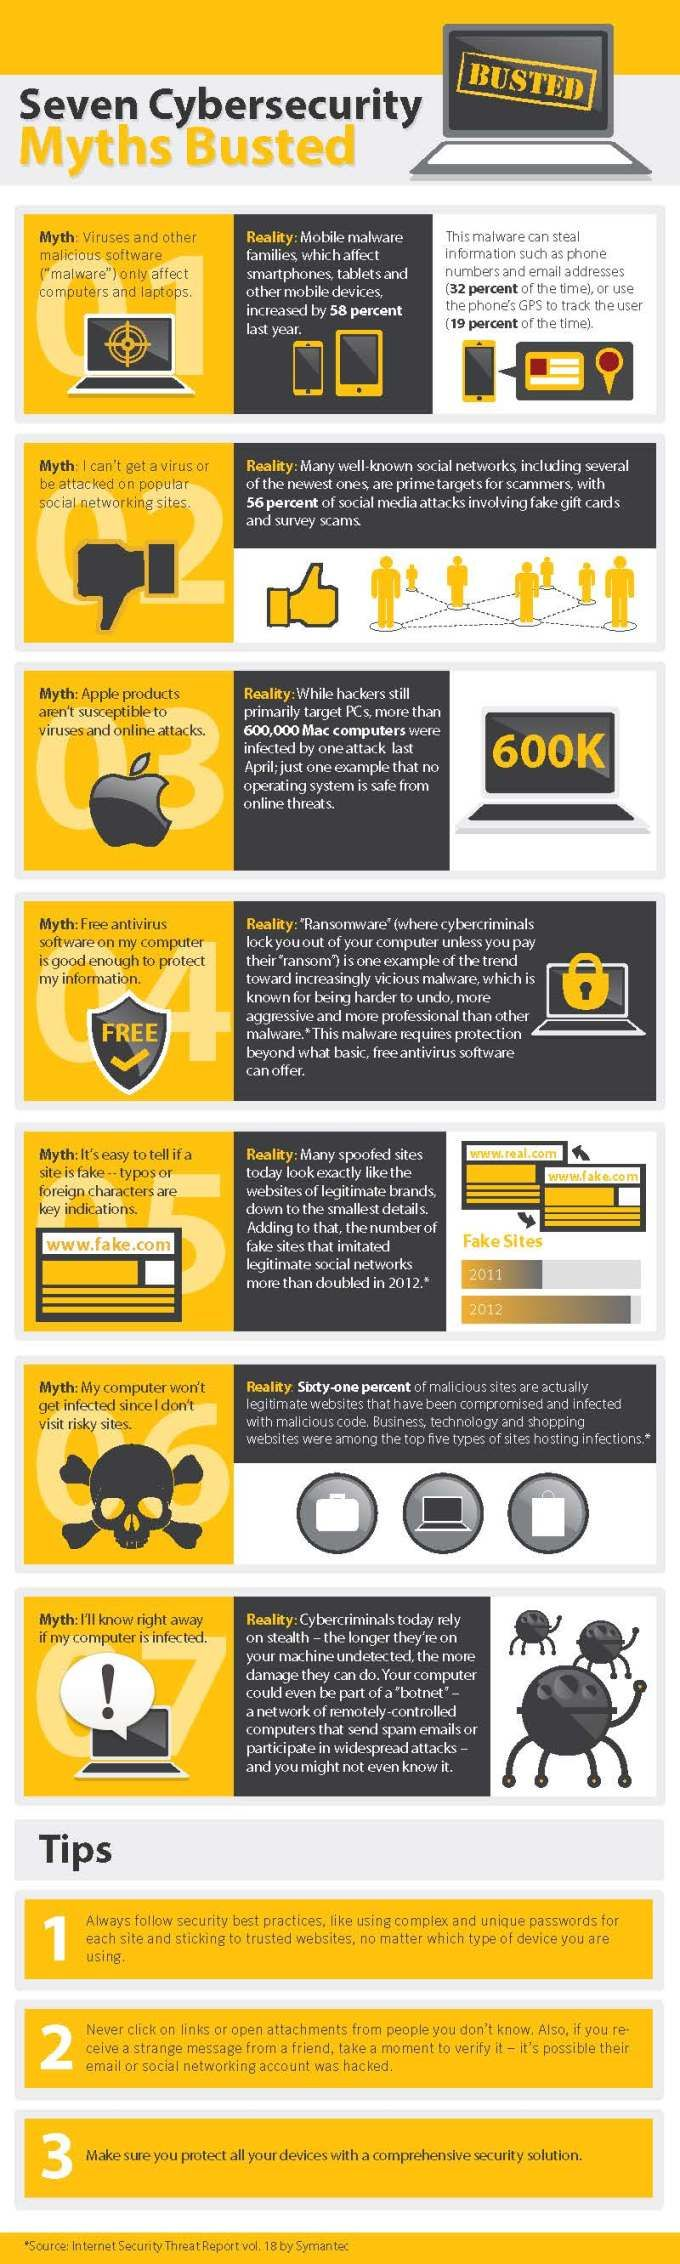 Seven Cybersecurity Myths Busted http://www.symantec.com/security_response/publications/threatreport.jsp